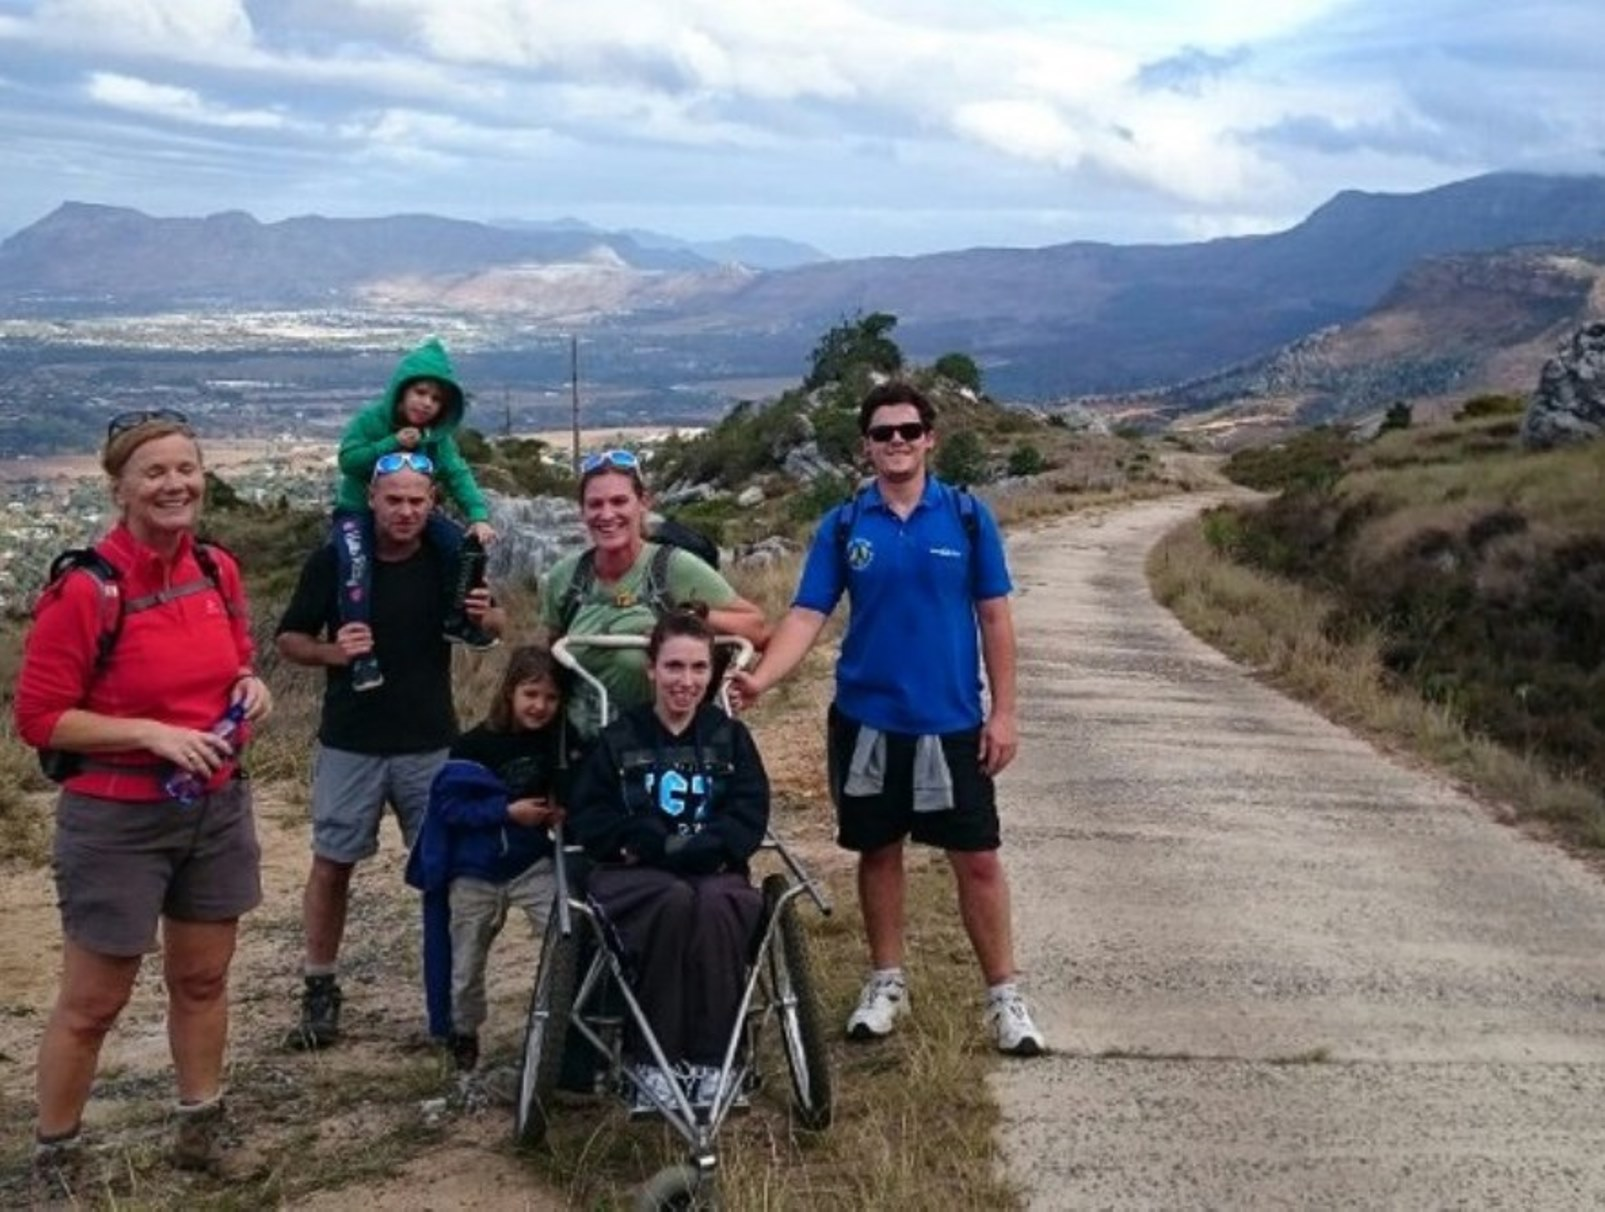 First Female Quadriplegic Summits Mount Kilimanjaro 13